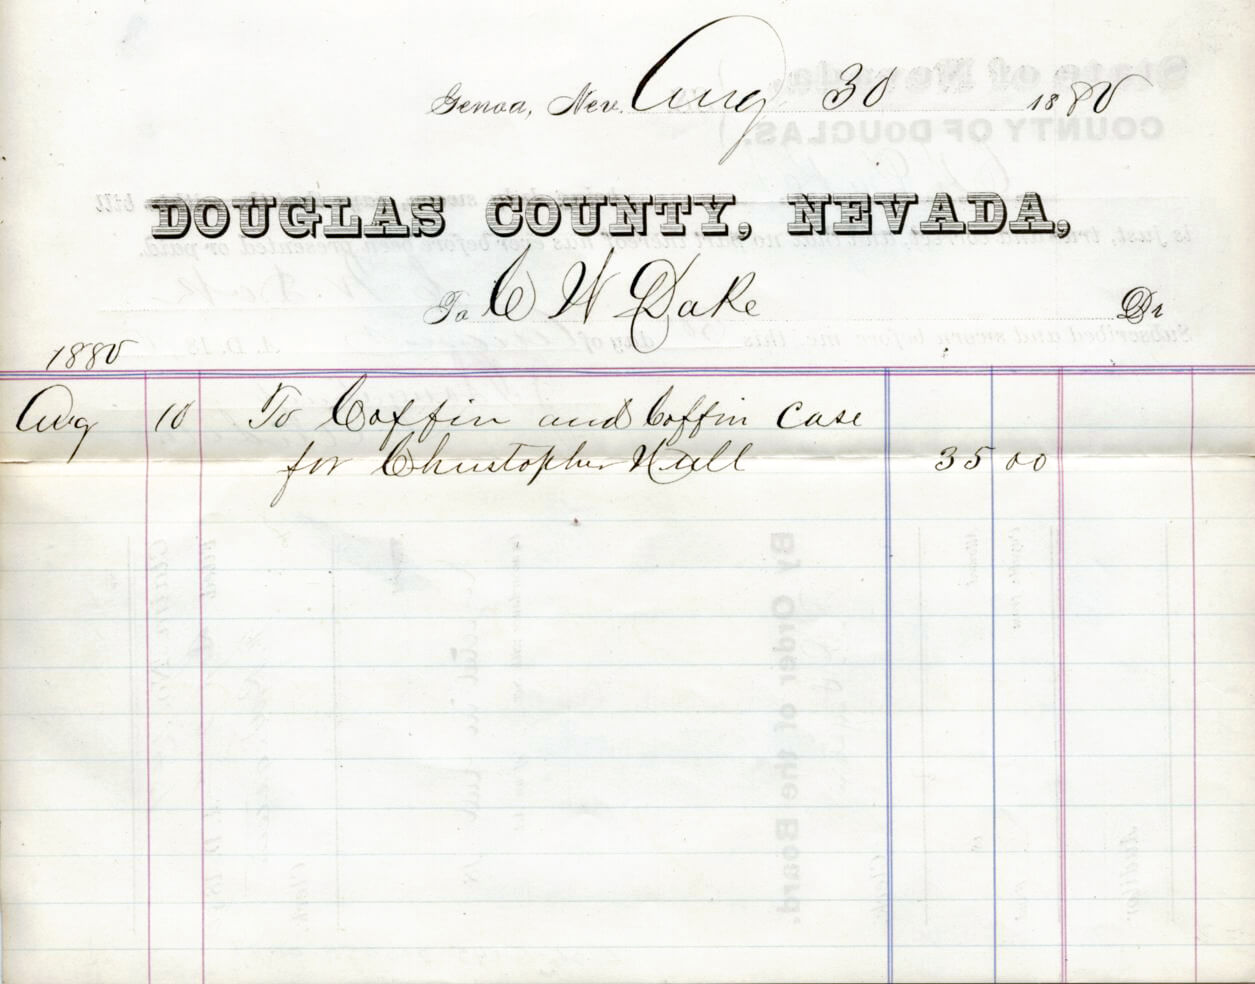 Invoice for a coffin for the murdered man, Christopher Hull